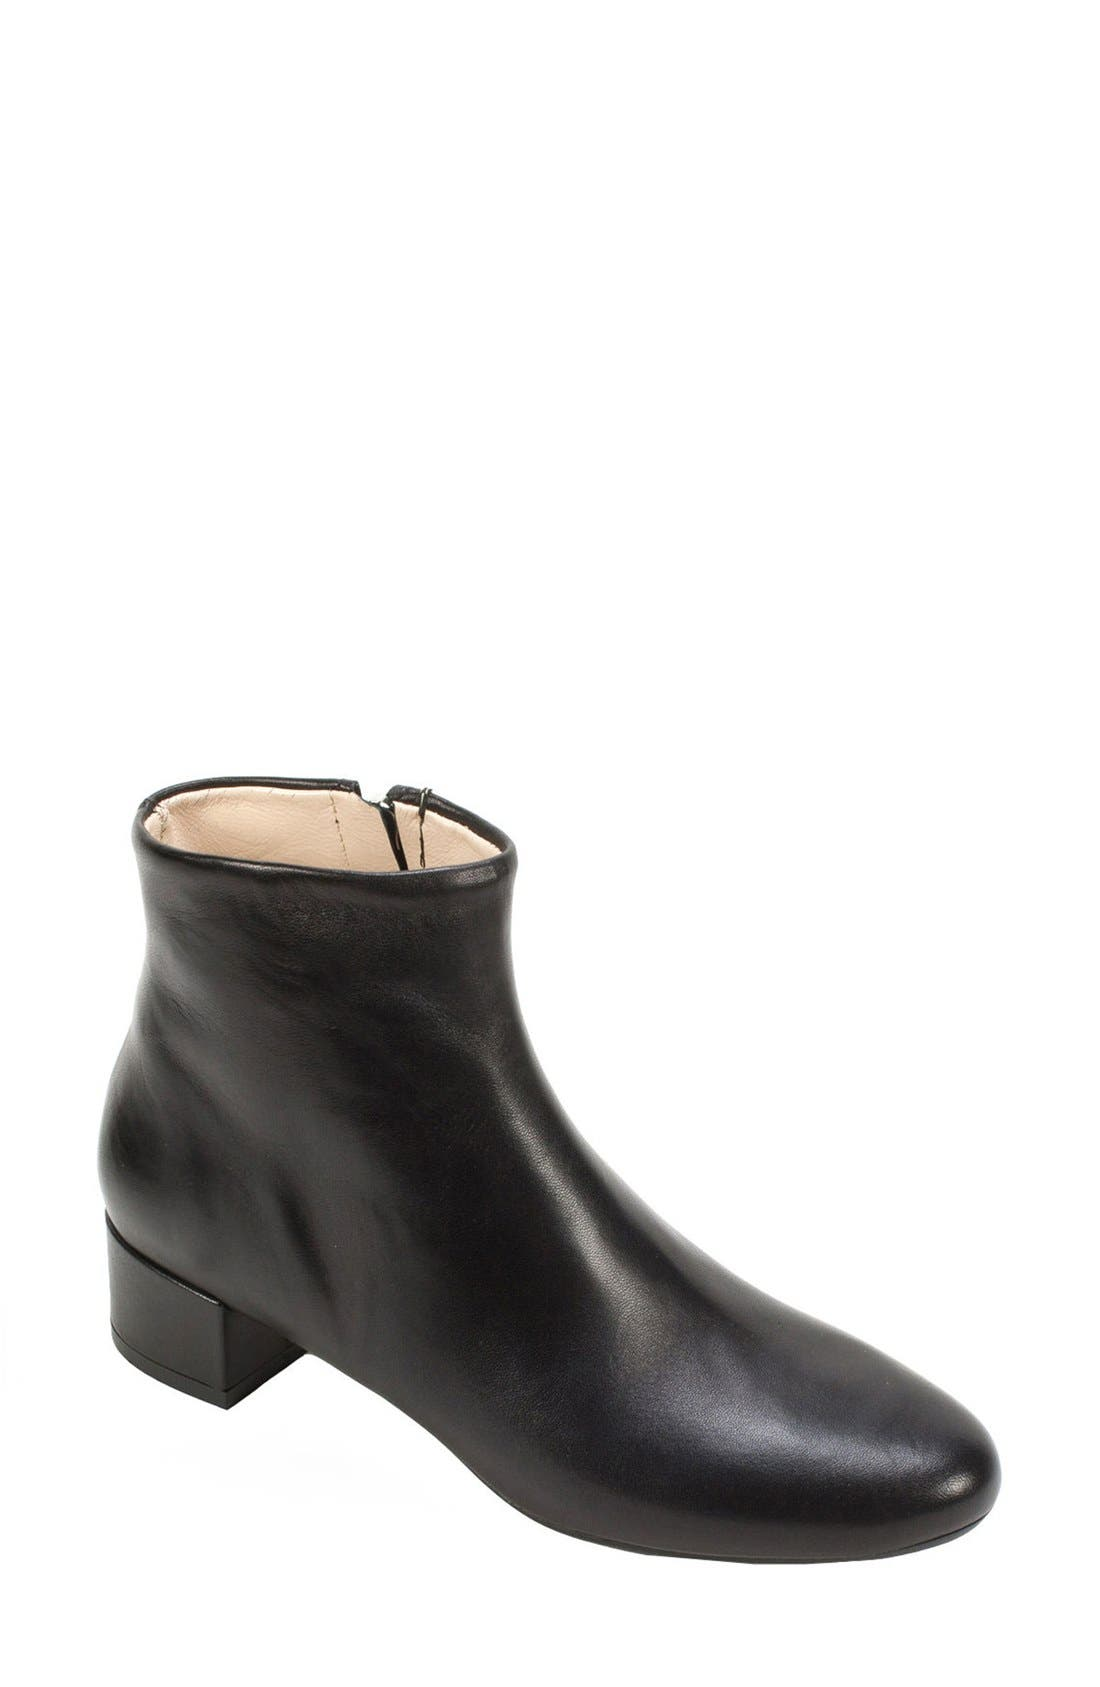 Alternate Image 1 Selected - Summit Jordie Block Heel Bootie (Women)